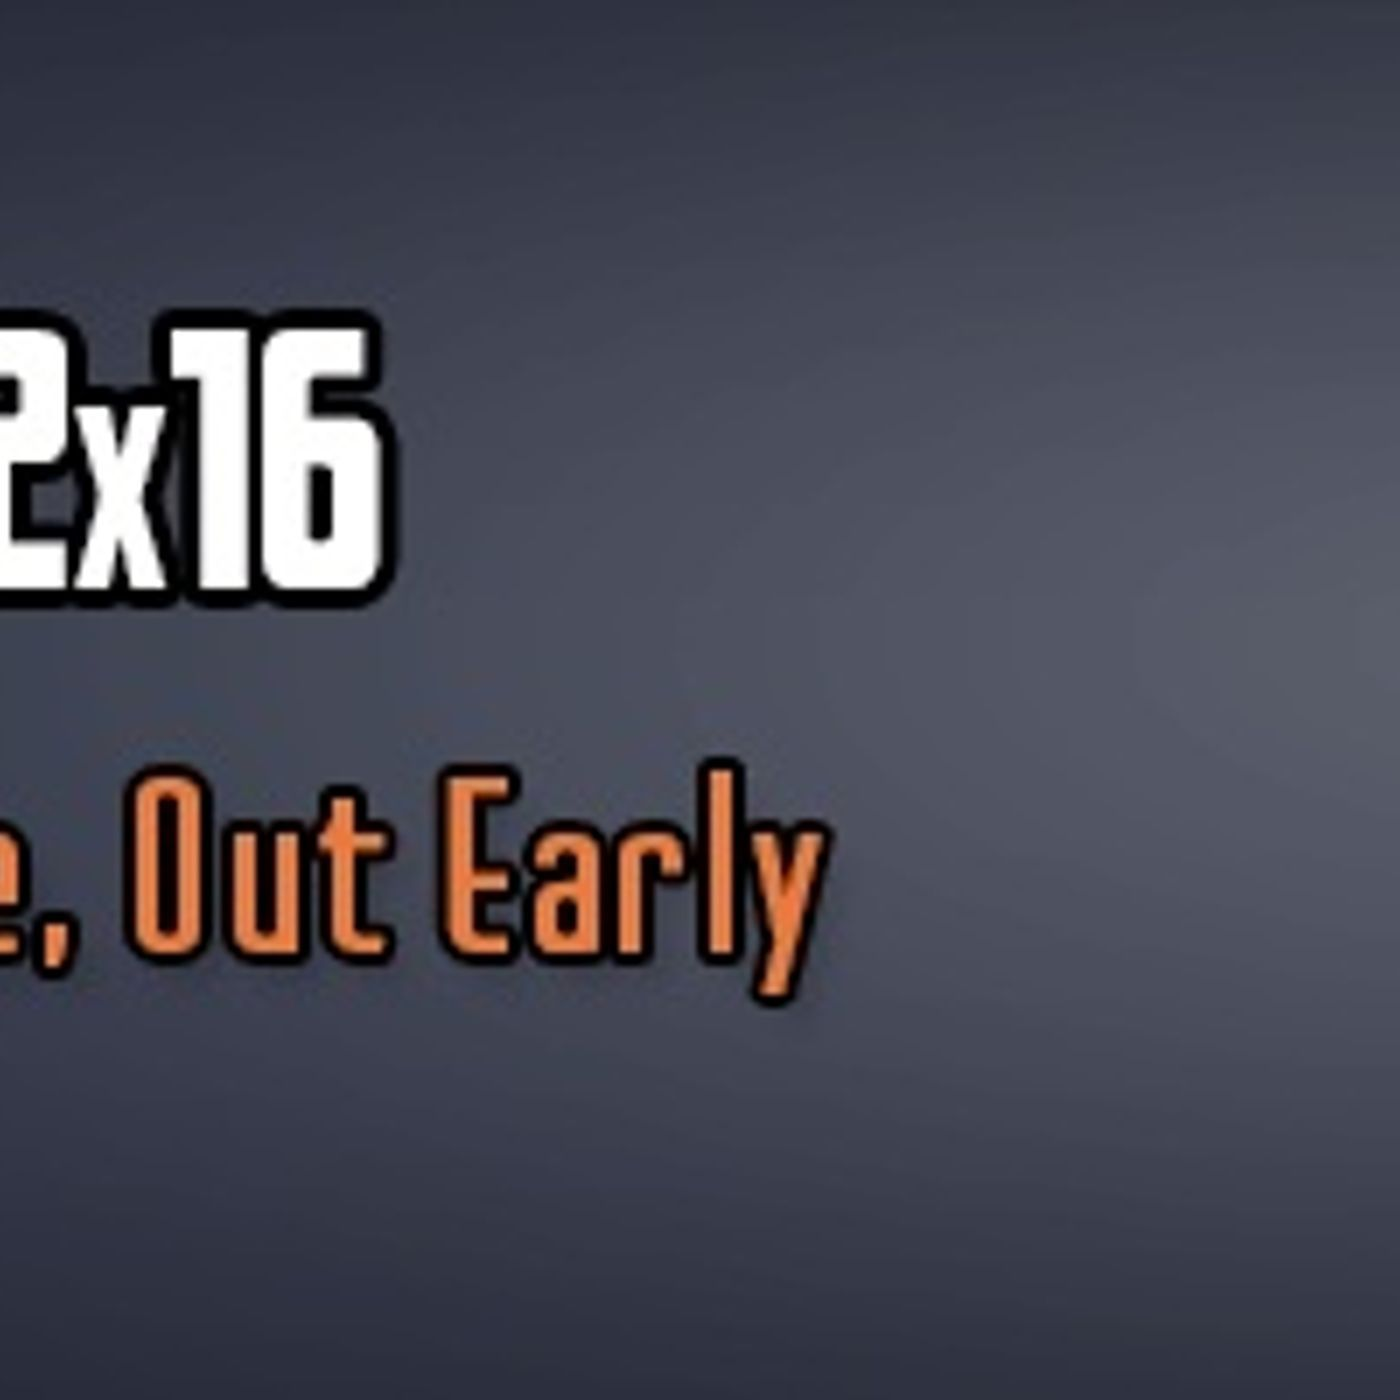 SMC 2x16: In Late, Out Early